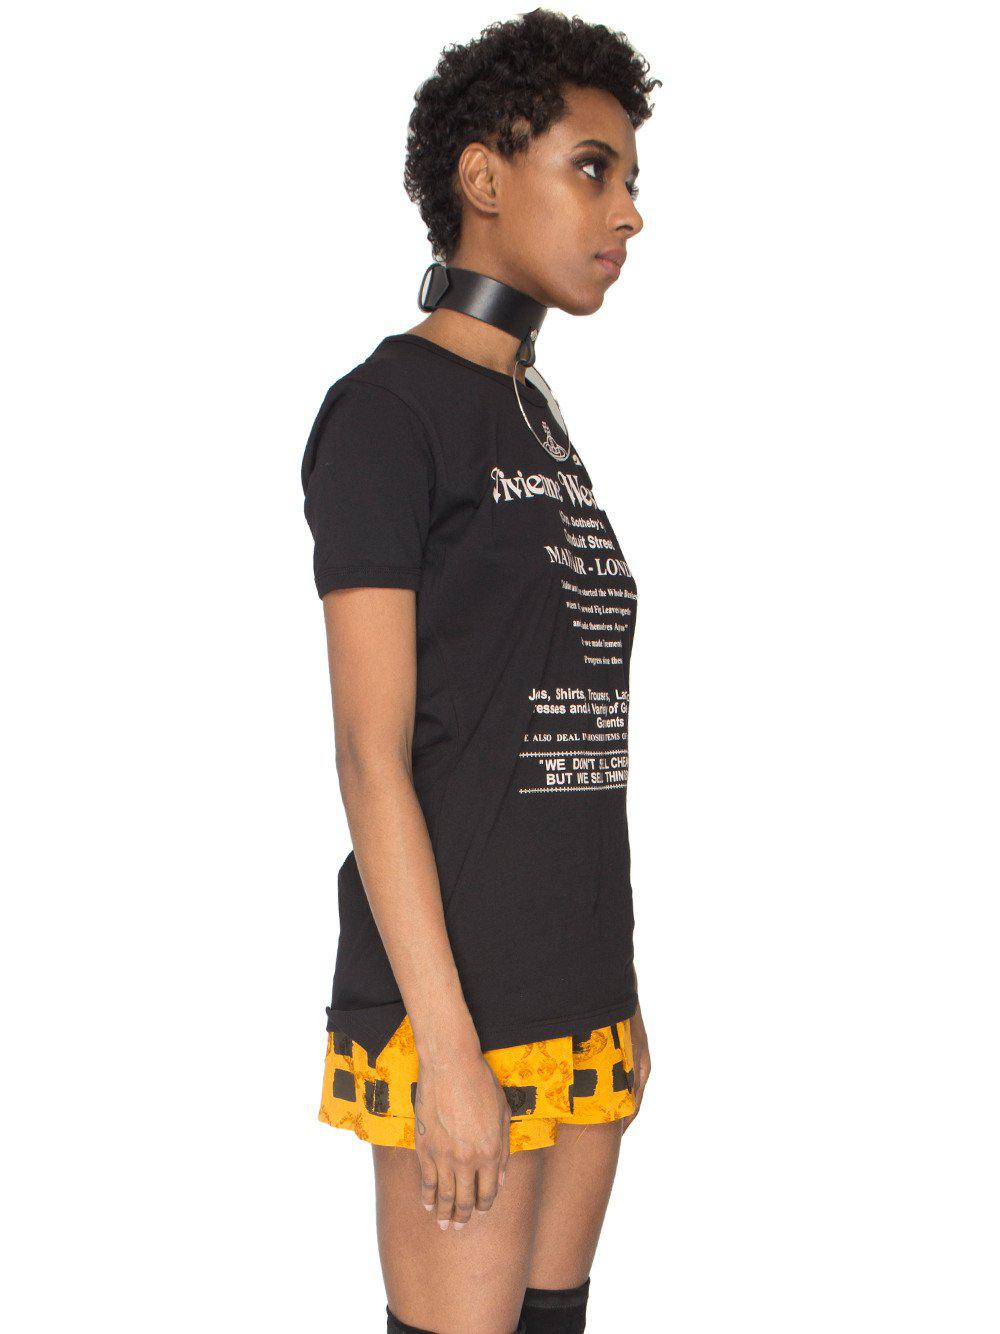 b158f2e2f9 Vivienne Westwood Anglomania We Don't Sell Cheap Things T-shirt in ...